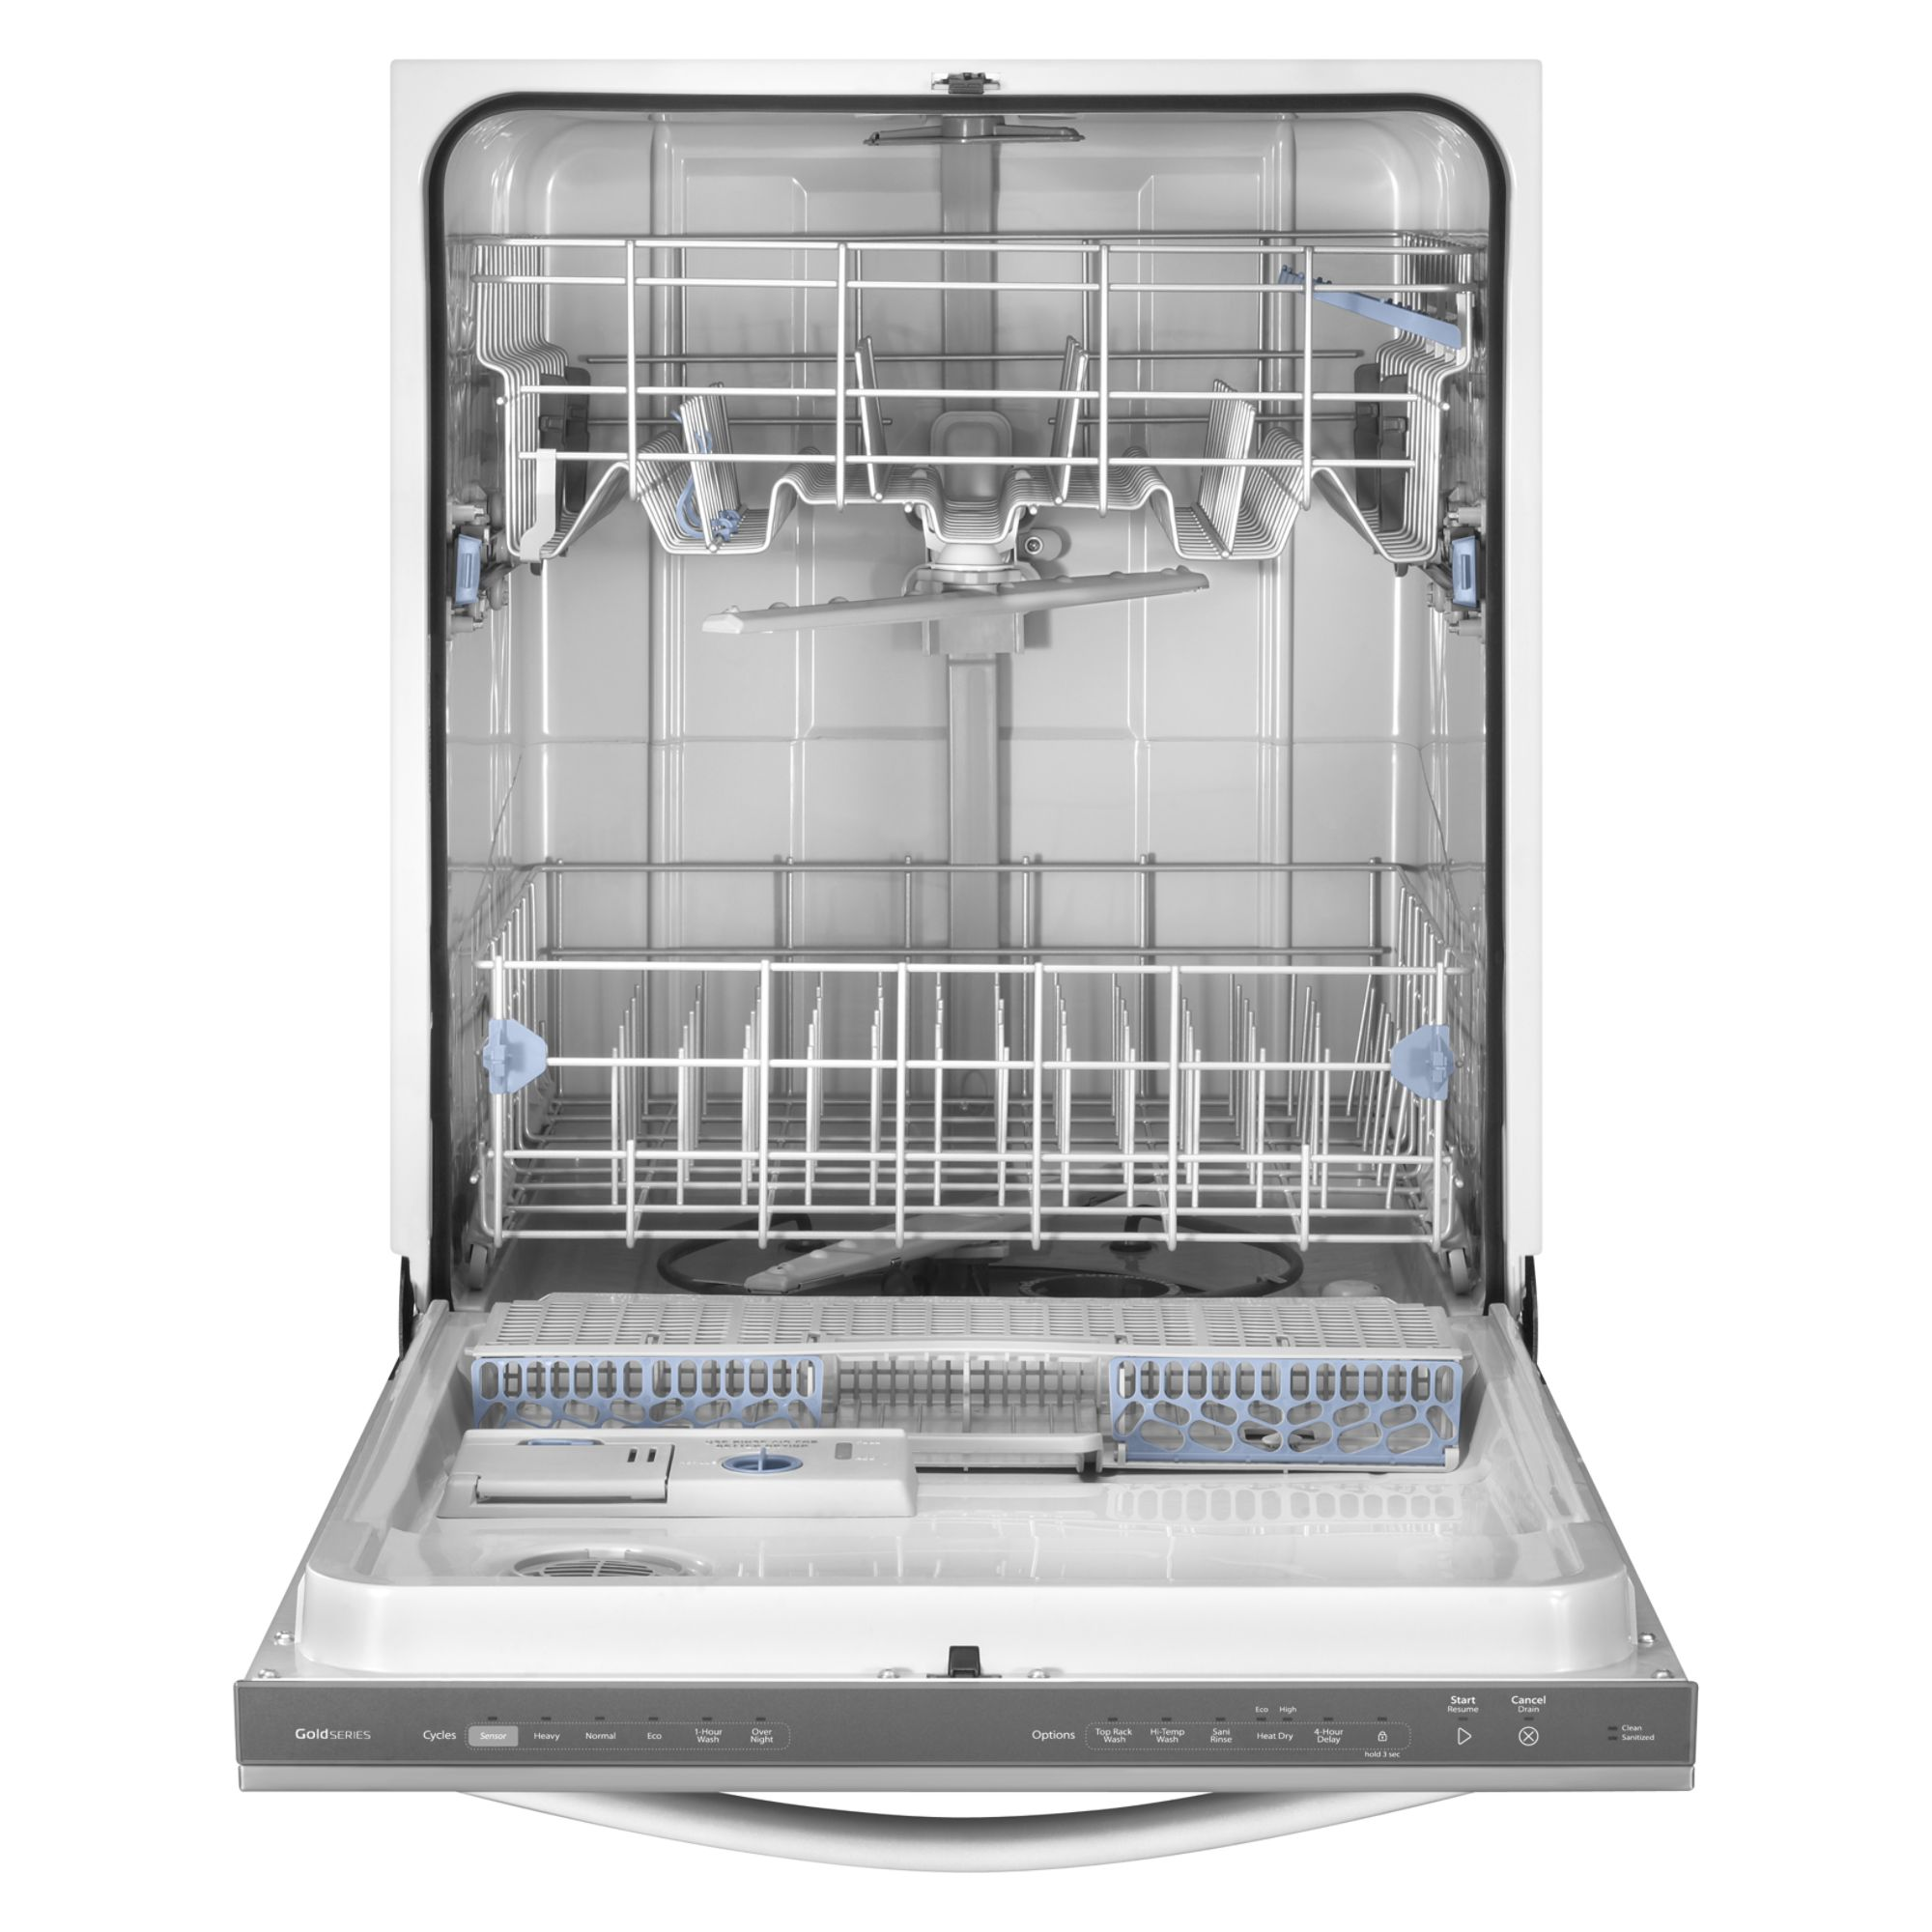 "Whirlpool 24"" Built-In Dishwasher w/ Top Rack Wash Option - Stainless Steel"